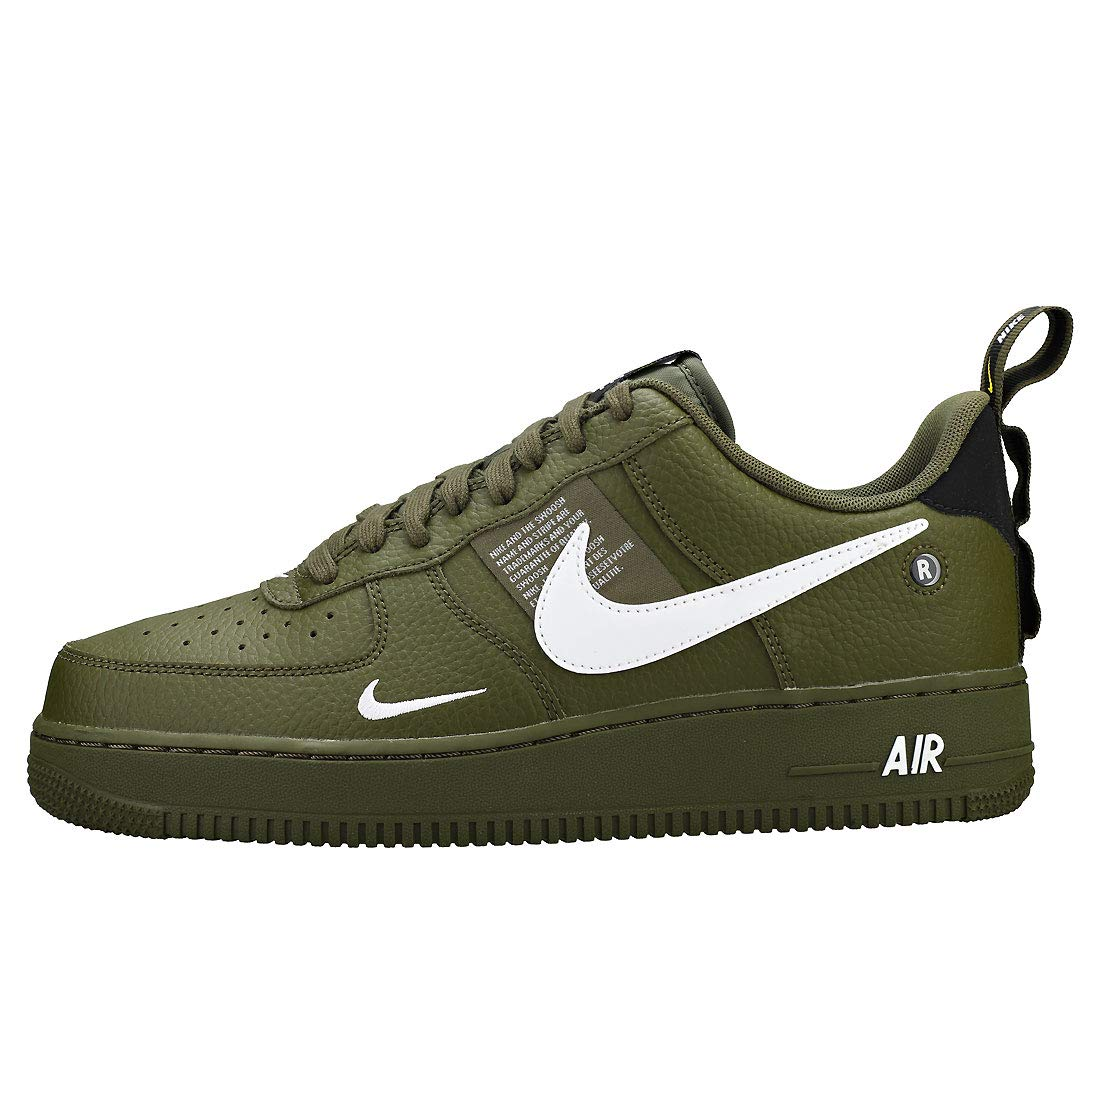 Amazon Utility it Nike Force Lv8 Da Scarpe Air '07 Uomo Fitness 1 nOg17Xqv